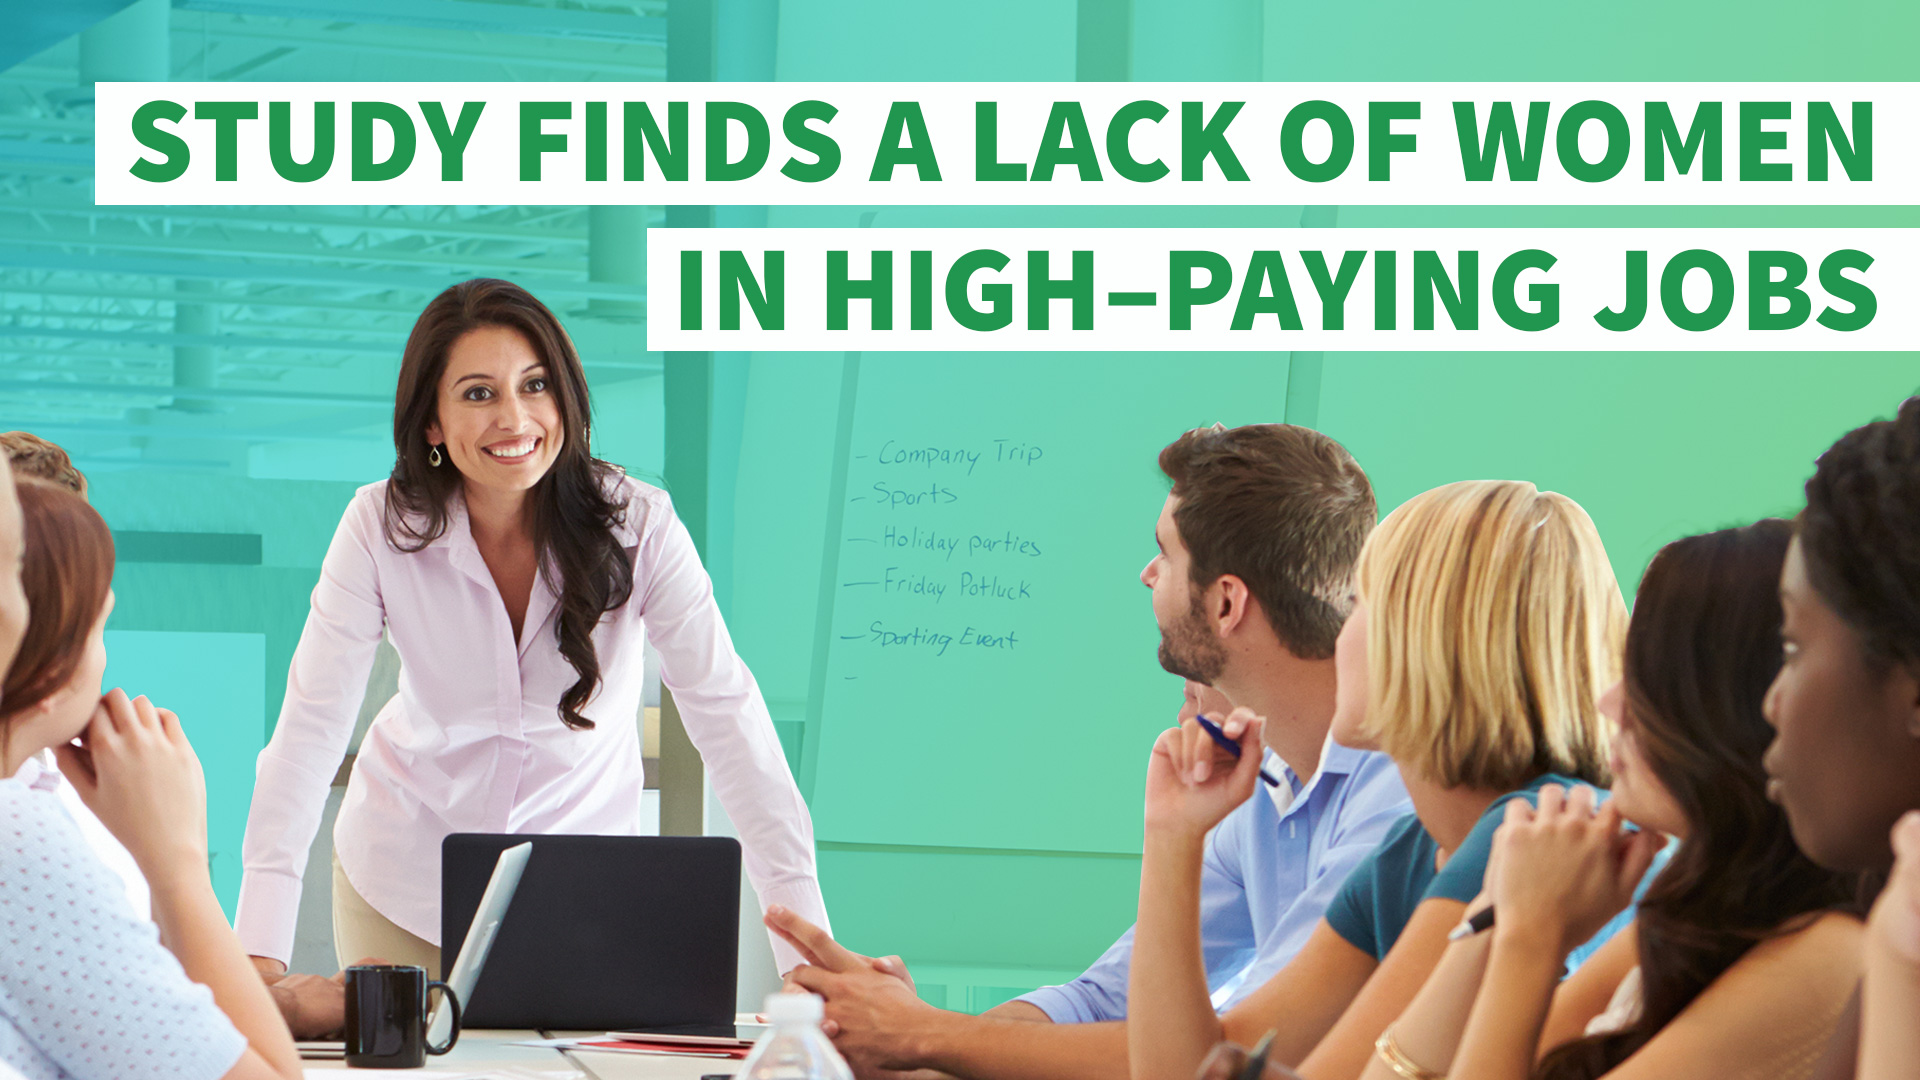 Making Progress? Study Finds Lack of Women in High-Paying Jobs ...